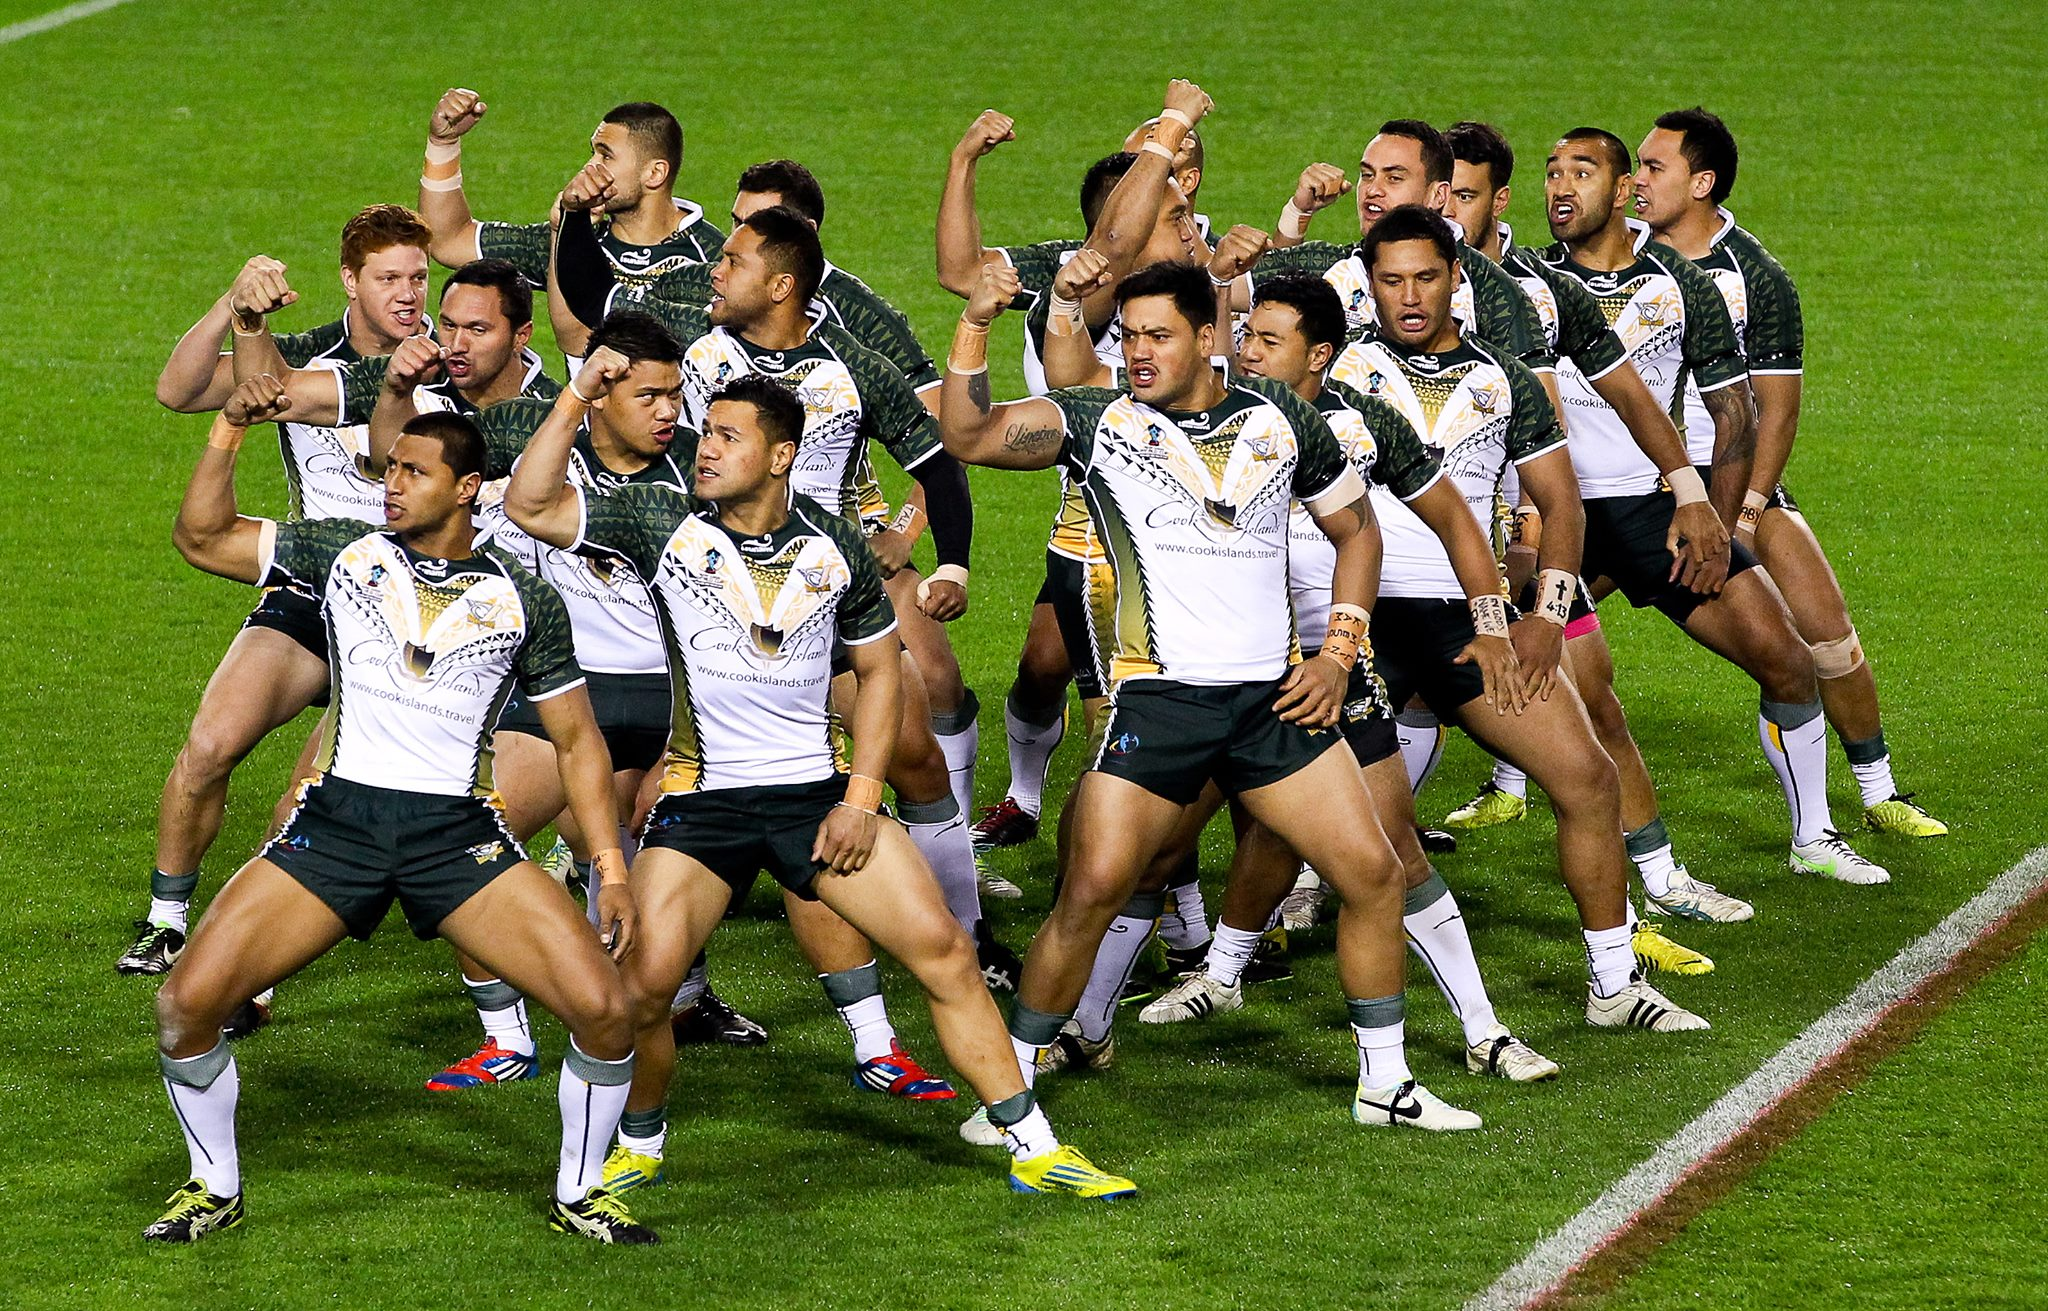 Cook Islands Rugby League Competition